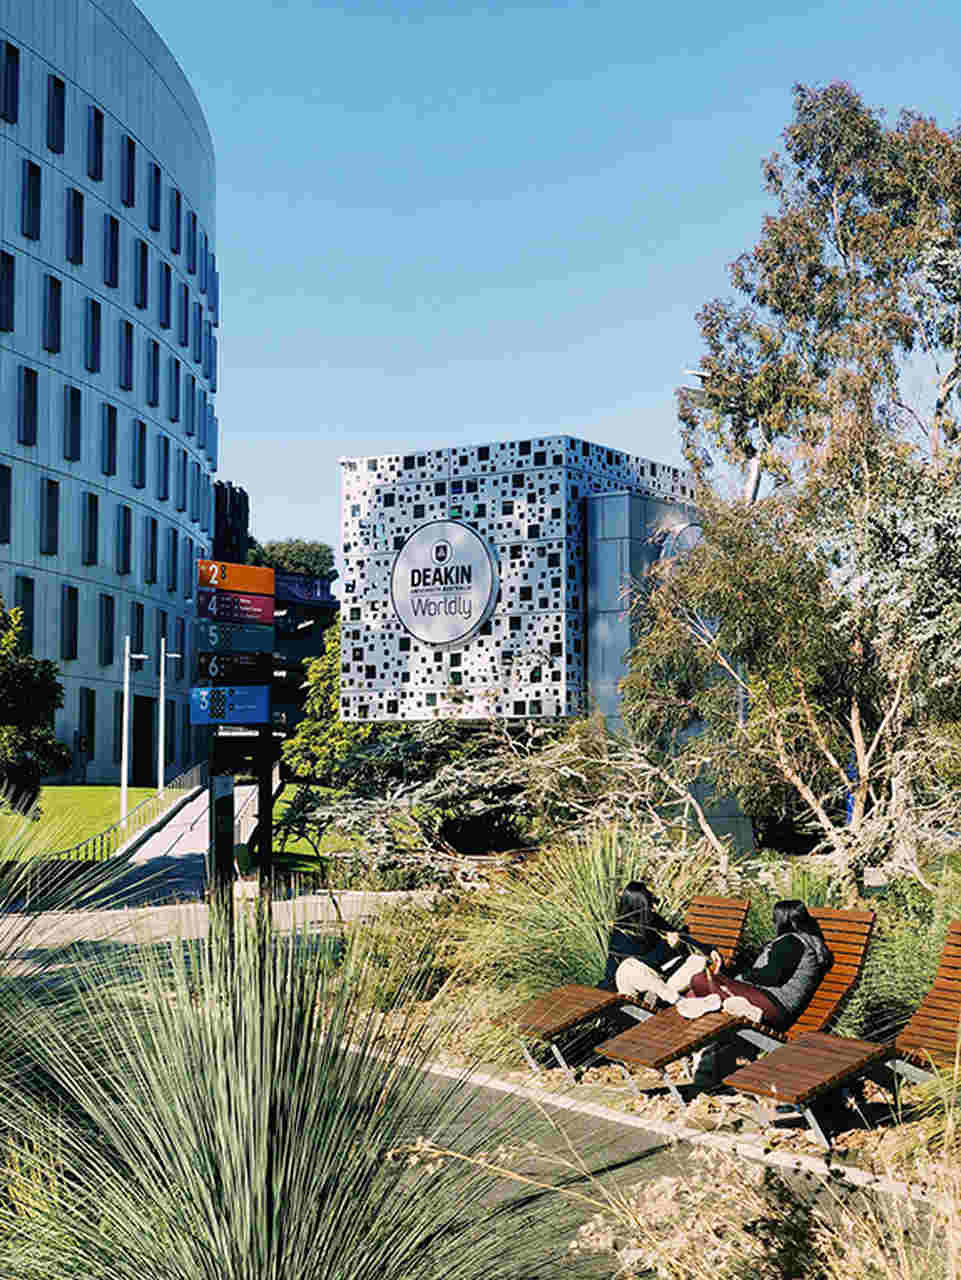 Architecture, Urban area, Daytime, Tree, Art, City, Condominium, Building, Sculpture, Real estate, Neighbourhood, Landscape, Residential area, Plant, House, Mixed-use, Deakin University, International student